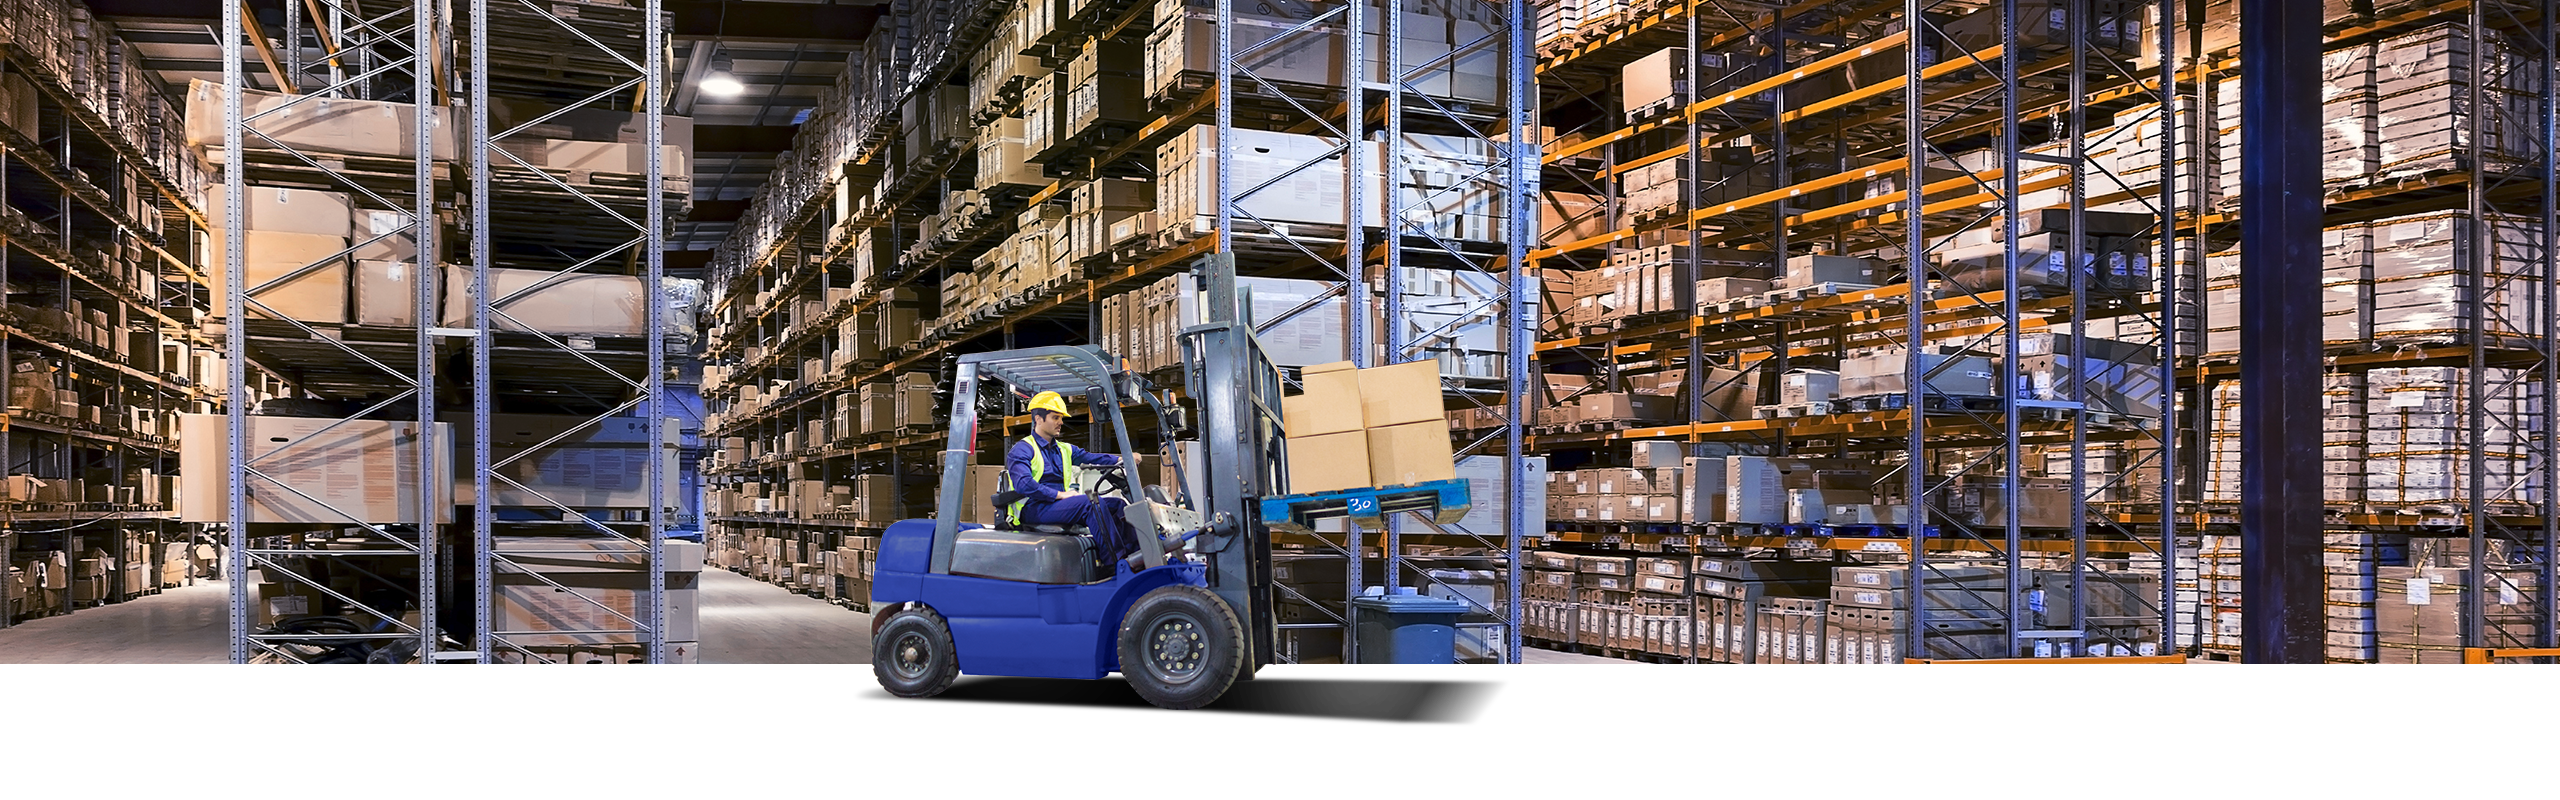 Dynevor Express forklift moving freight in a warehouse